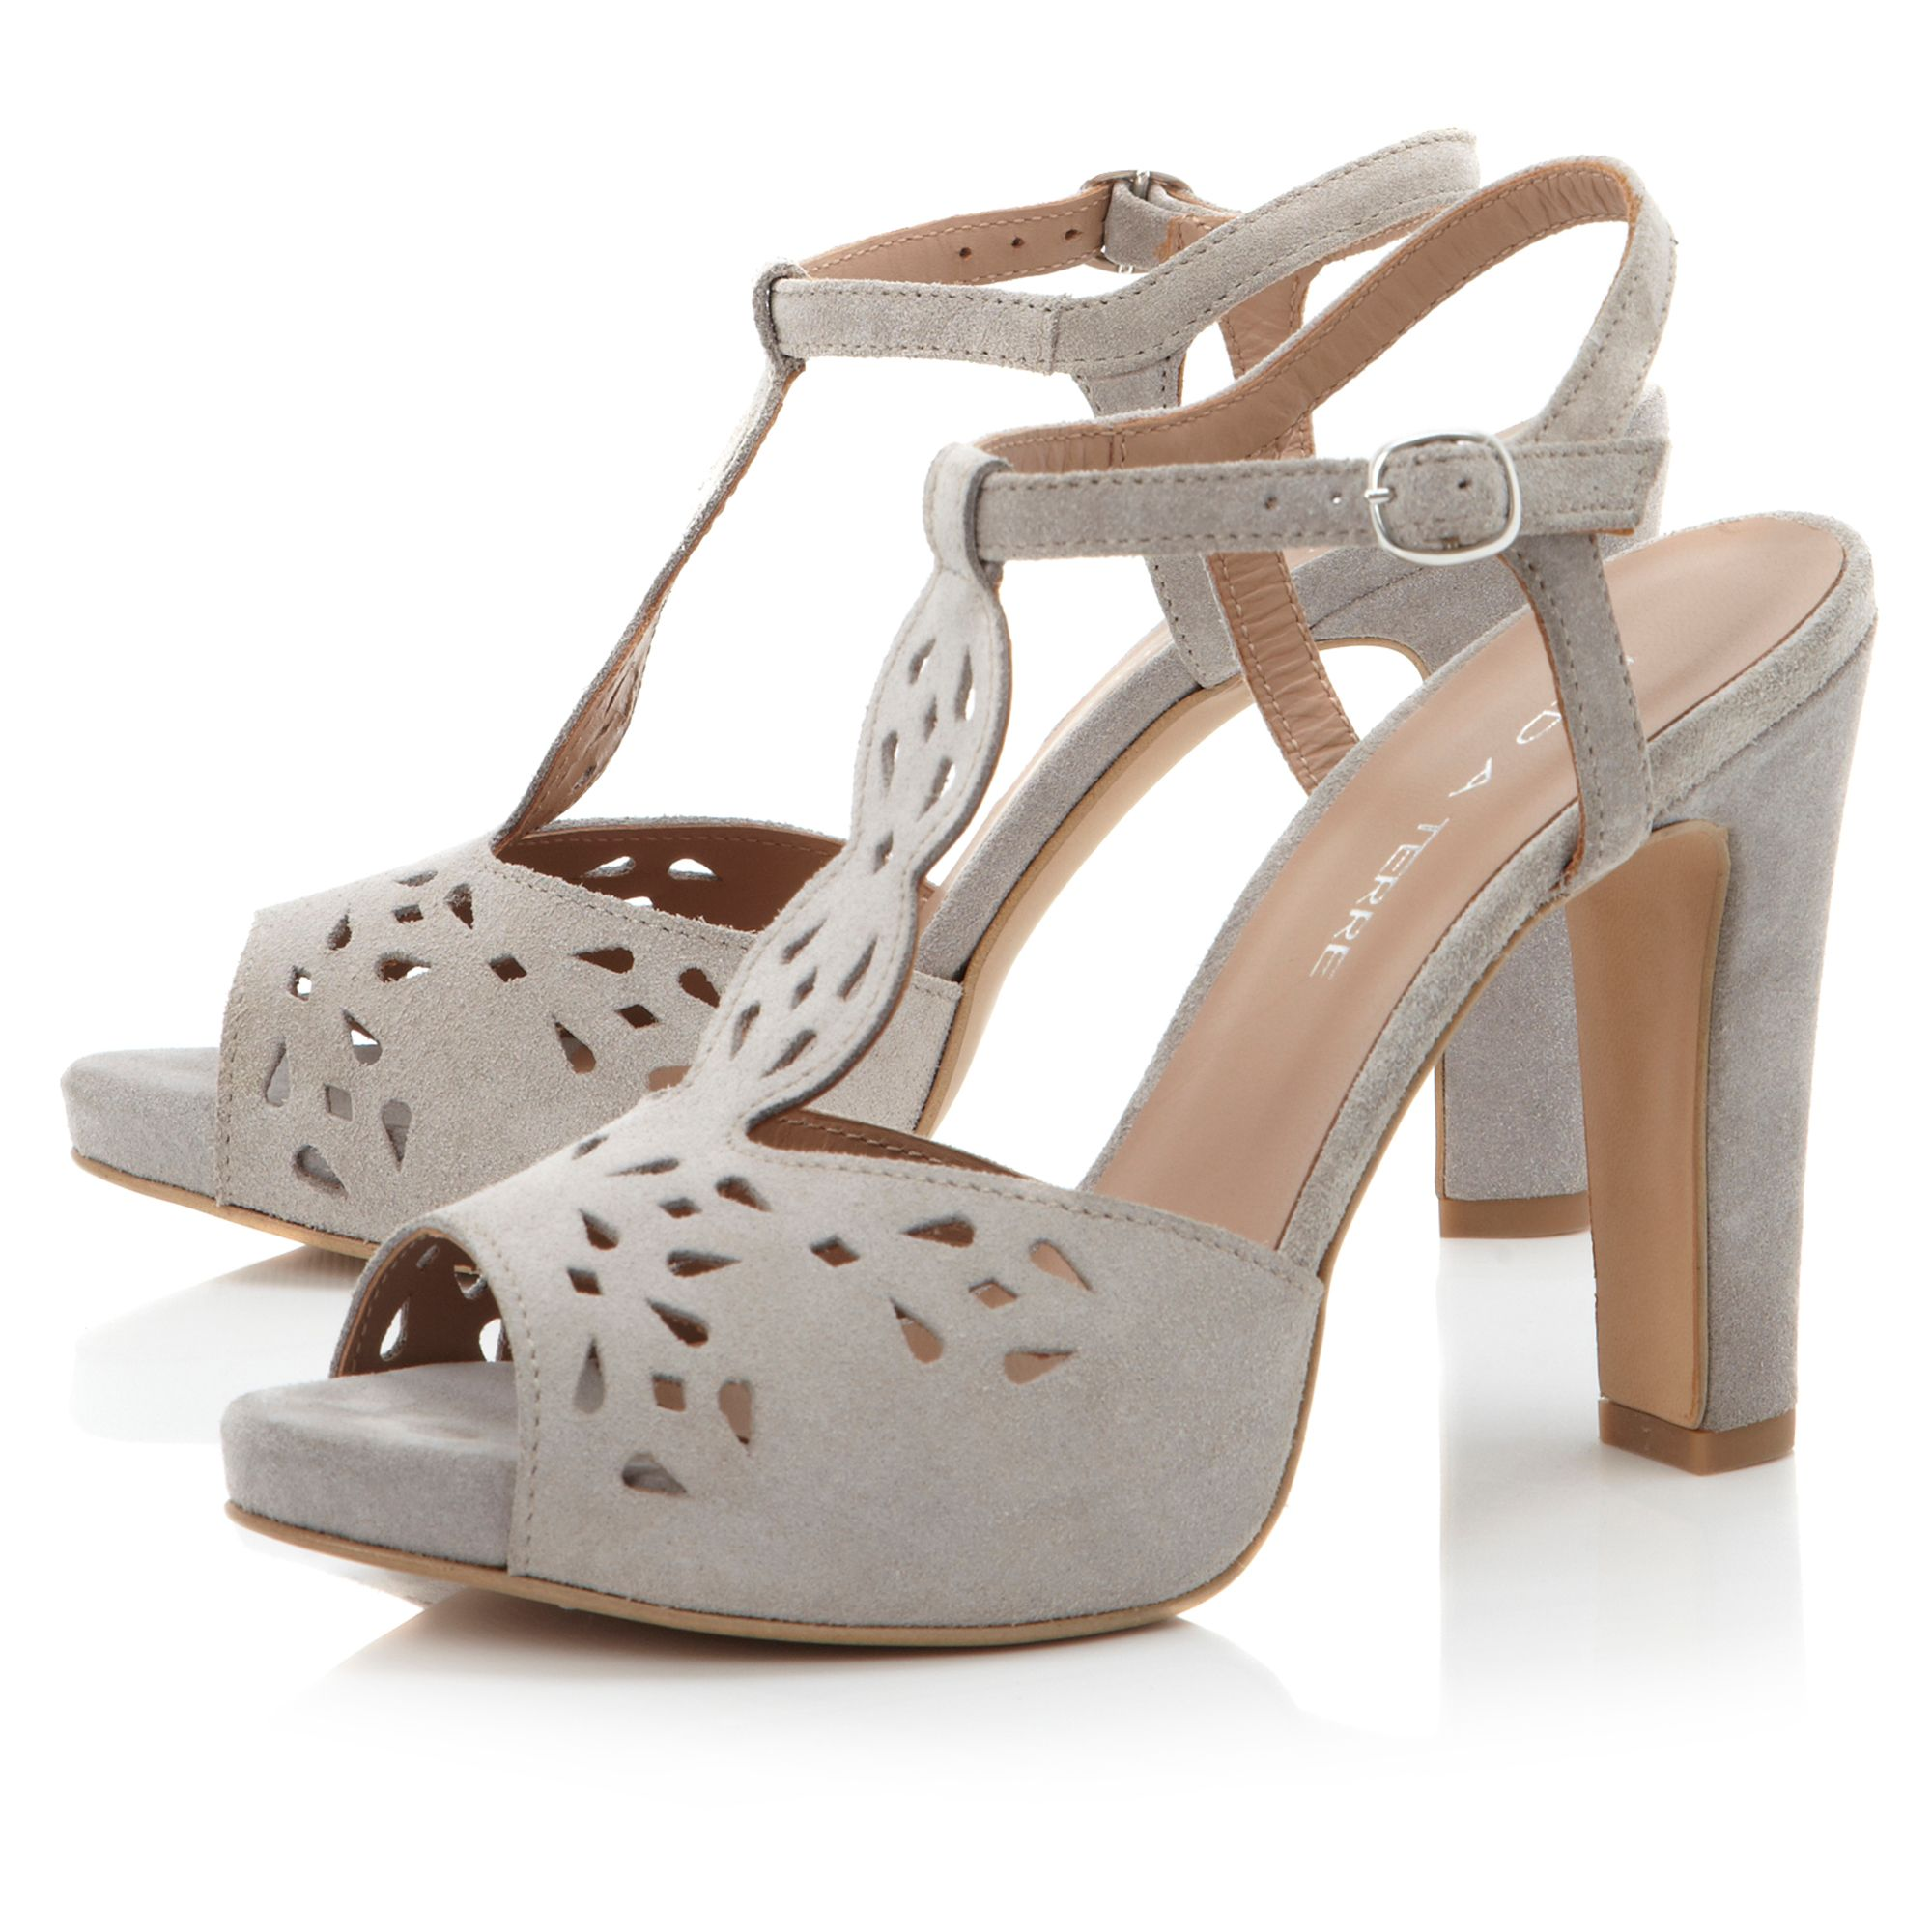 Lesh t-bar laser cut sandals